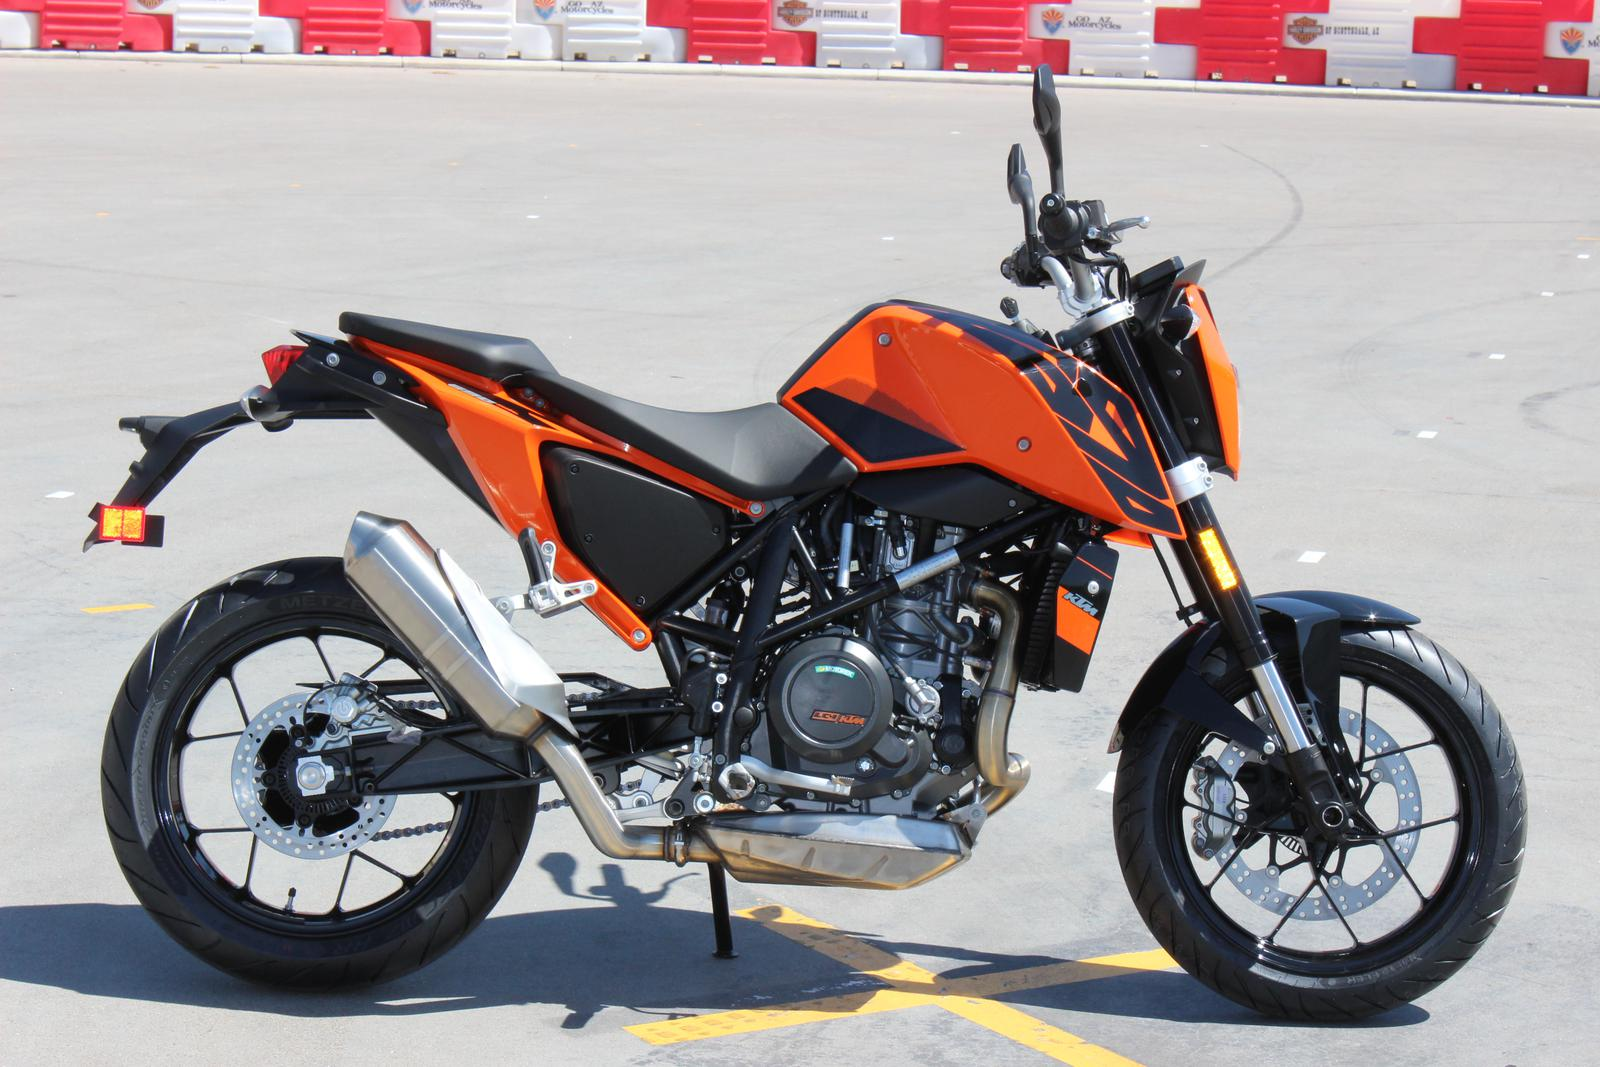 2017 ktm 690 duke for sale in scottsdale, az | go az motorcycles